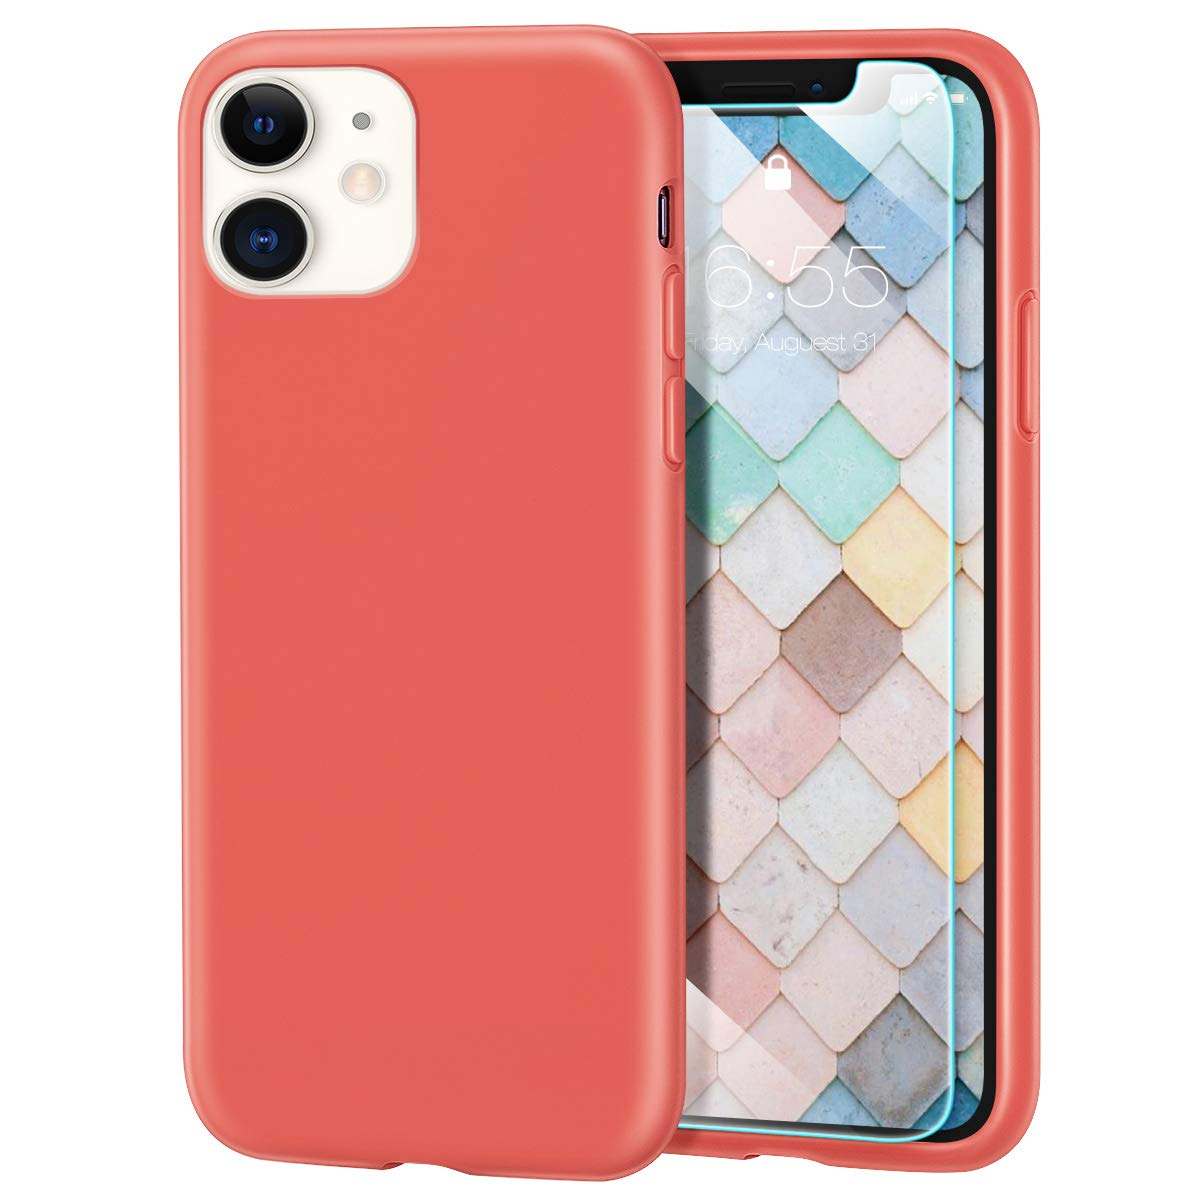 MILPROX iPhone 11 Case with Screen Protector, Liquid Silicone Gel Rubber Shockproof Slim Shell with Soft Microfiber Cloth Lining Cushion Cover for iPhone 11 6.1 inch (2019)-Coral